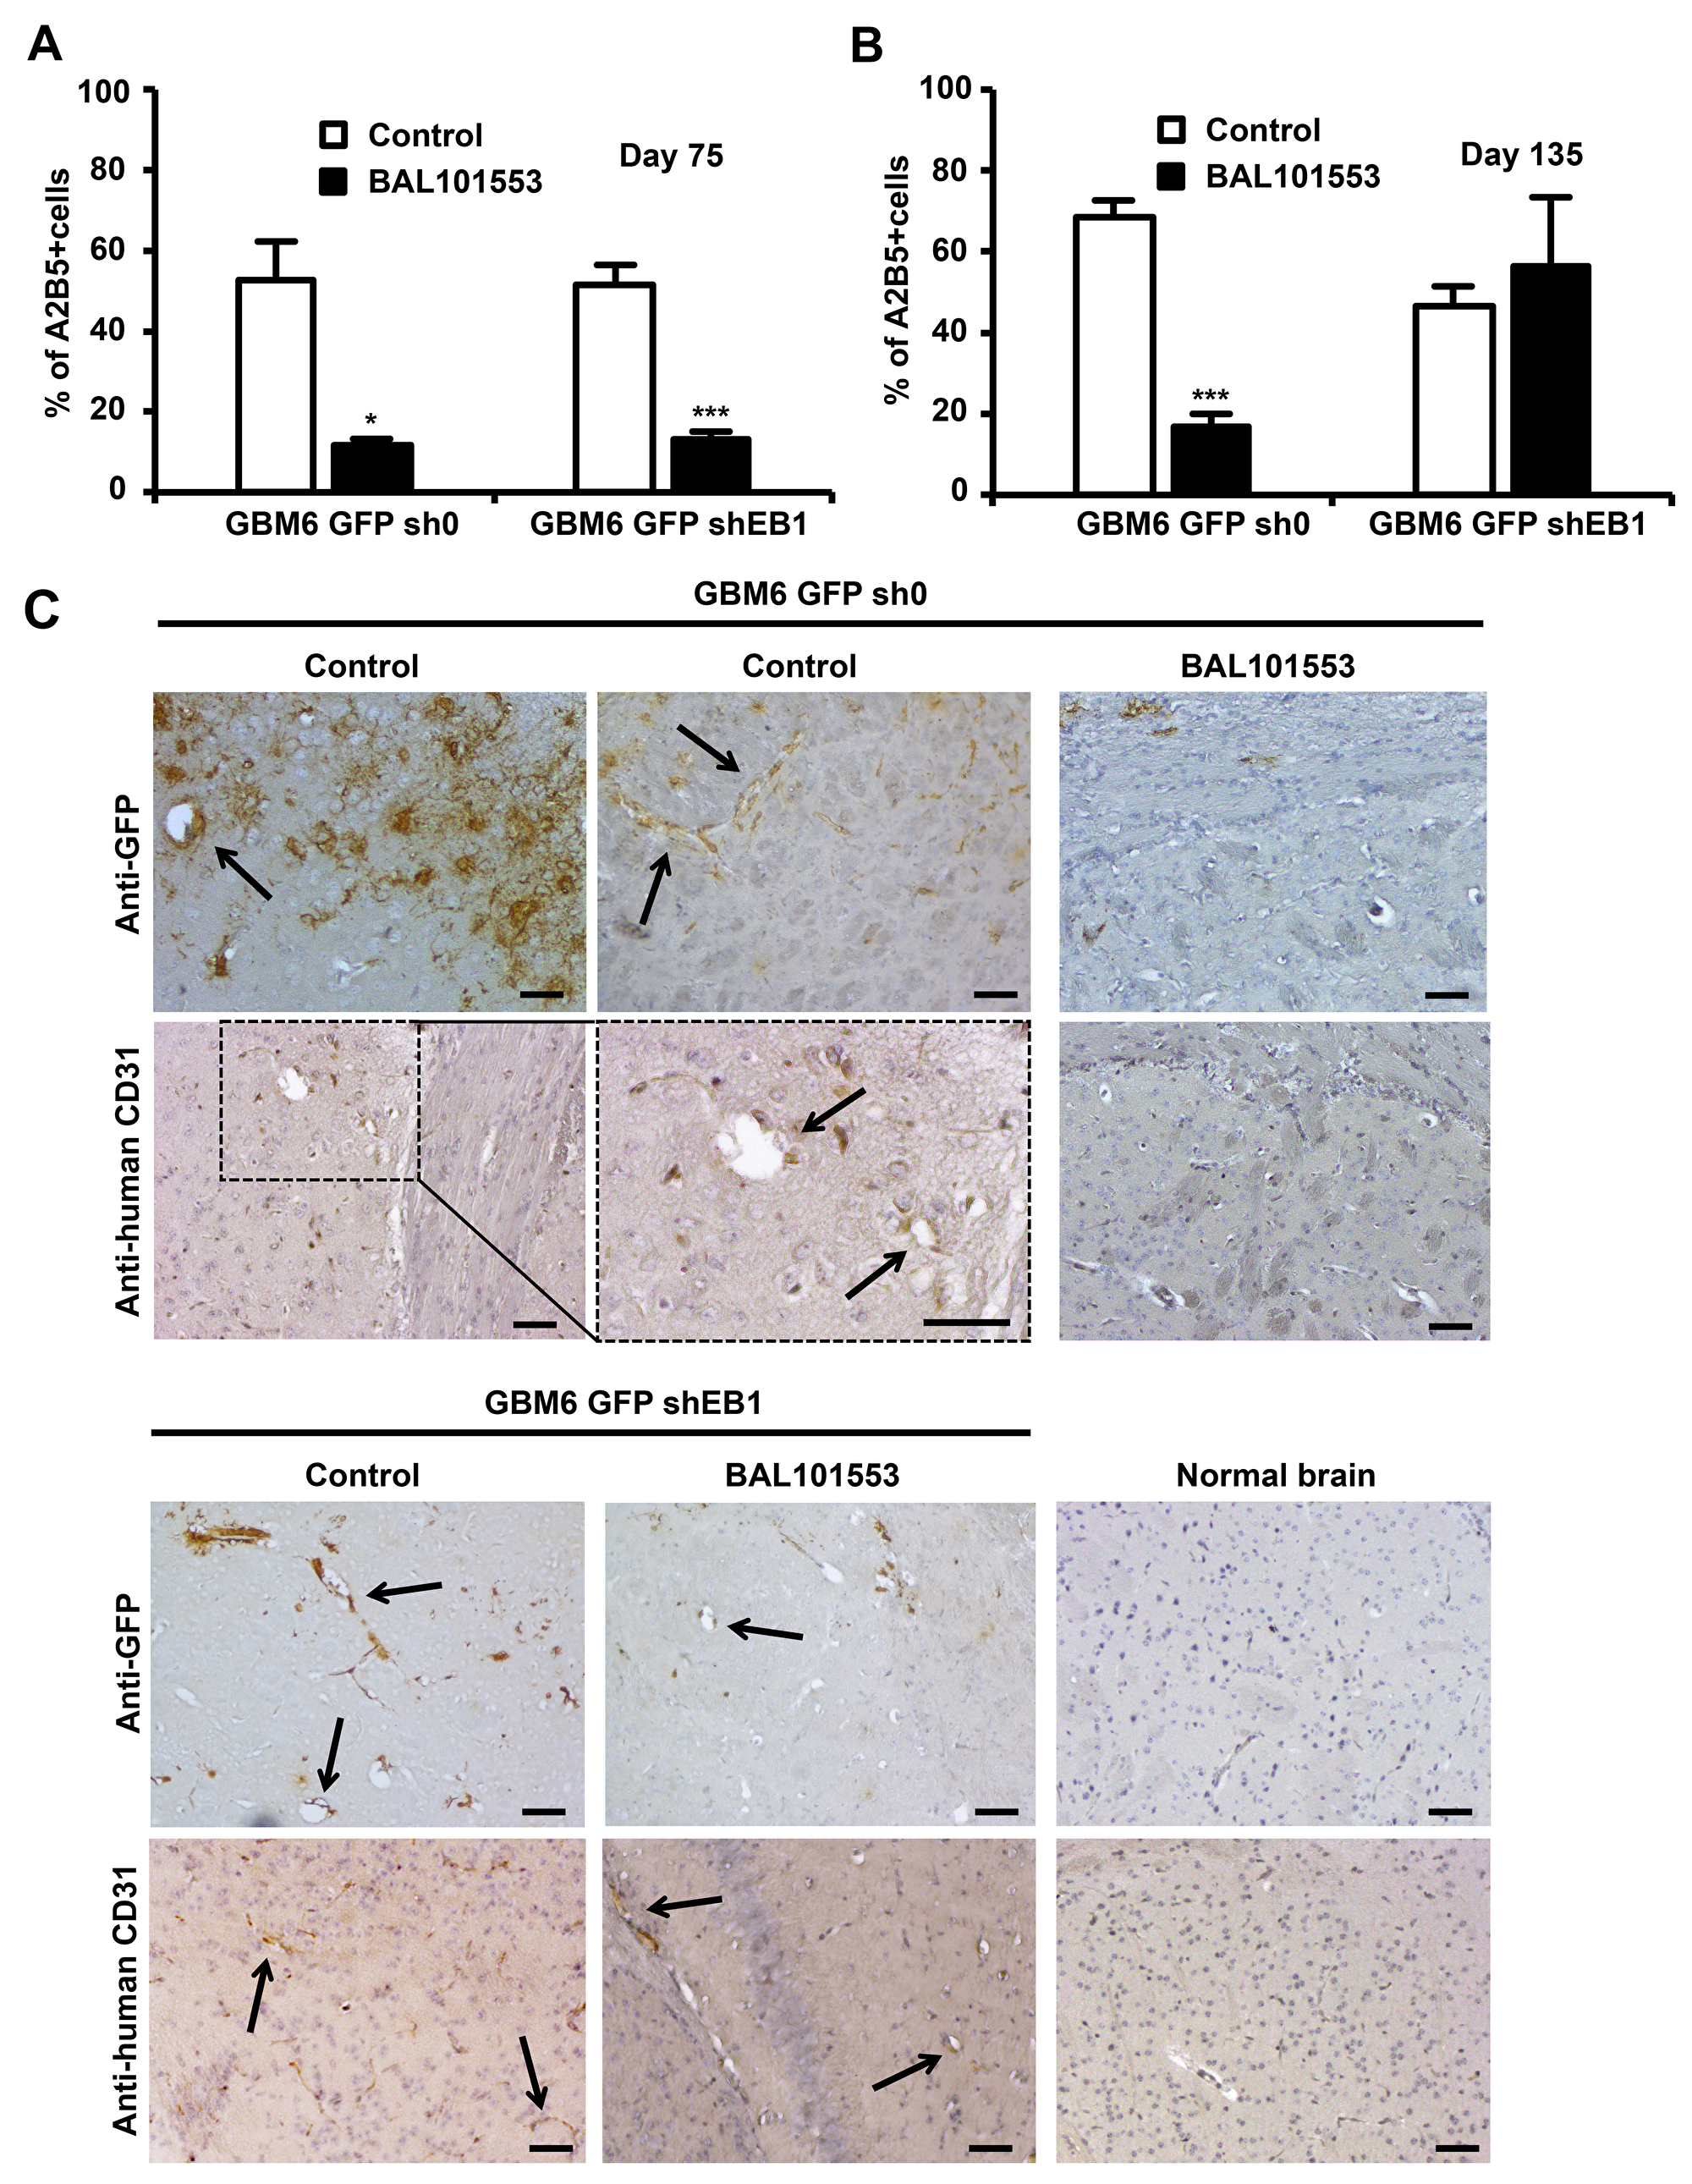 BAL101553 induces loss of stem cell properties and inhibits tumor vasculature.